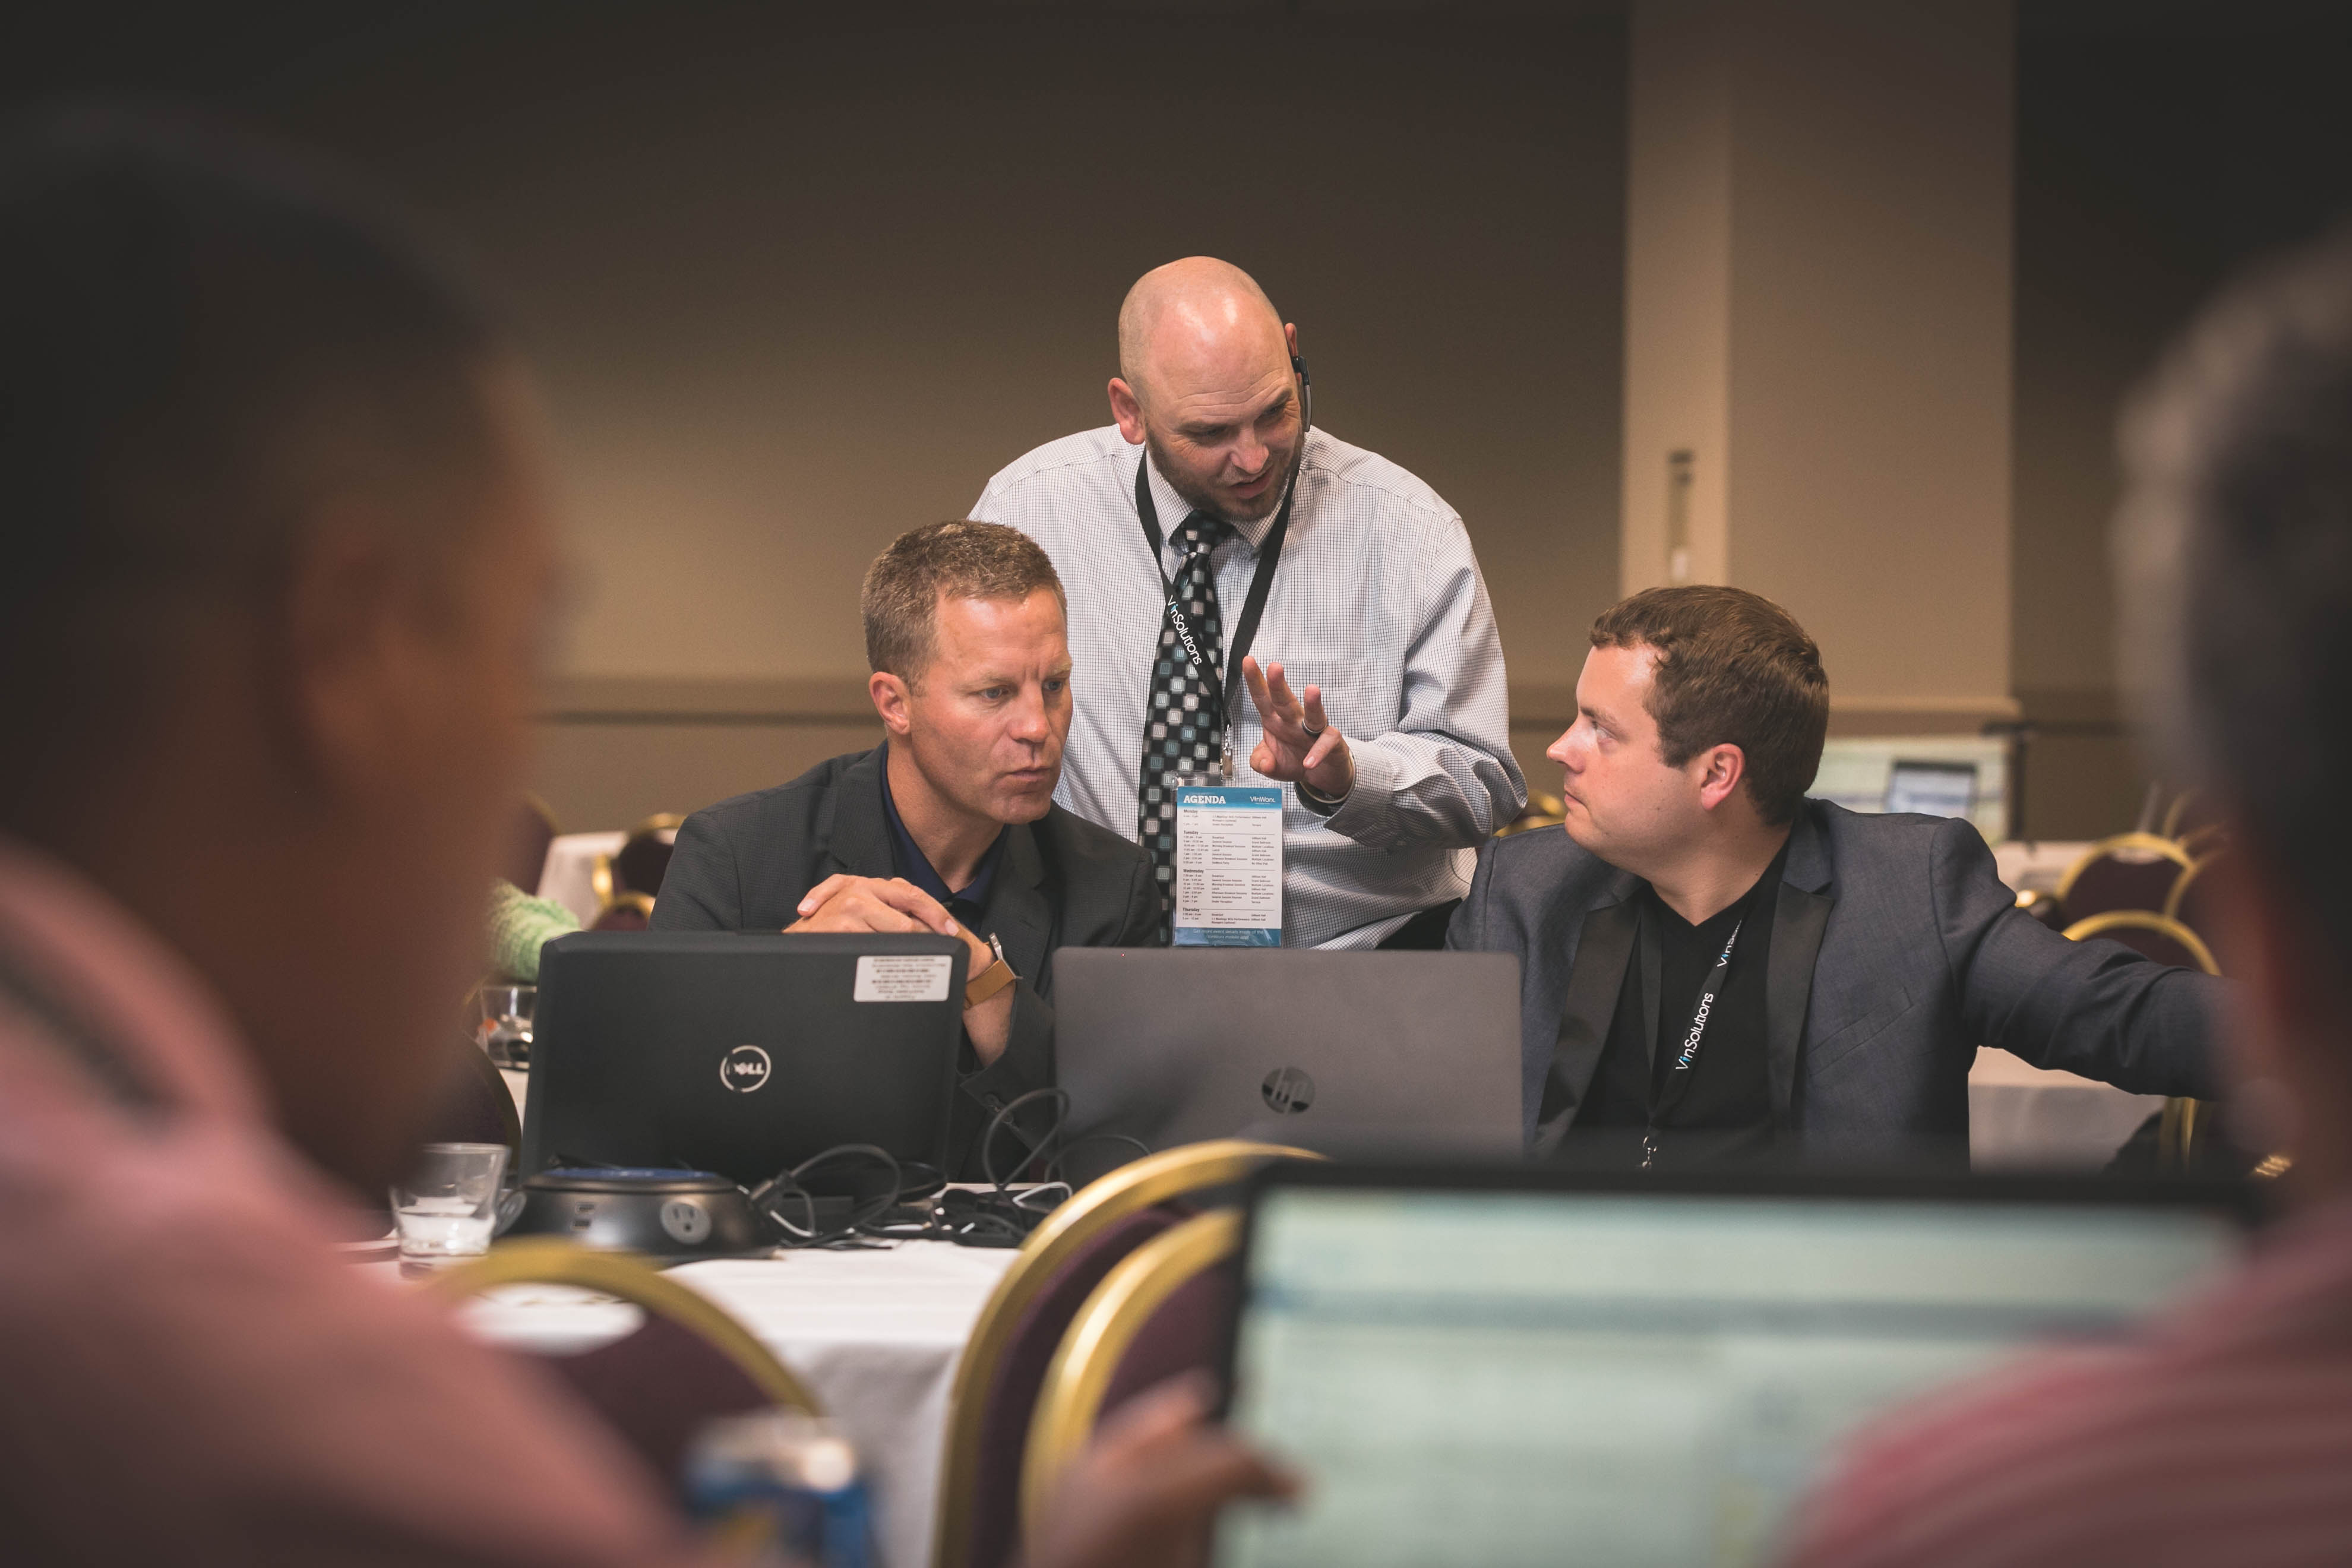 Dealers meet one-on-one with their Performance Manager to talk through ways to improve their Connect CRM utilization.